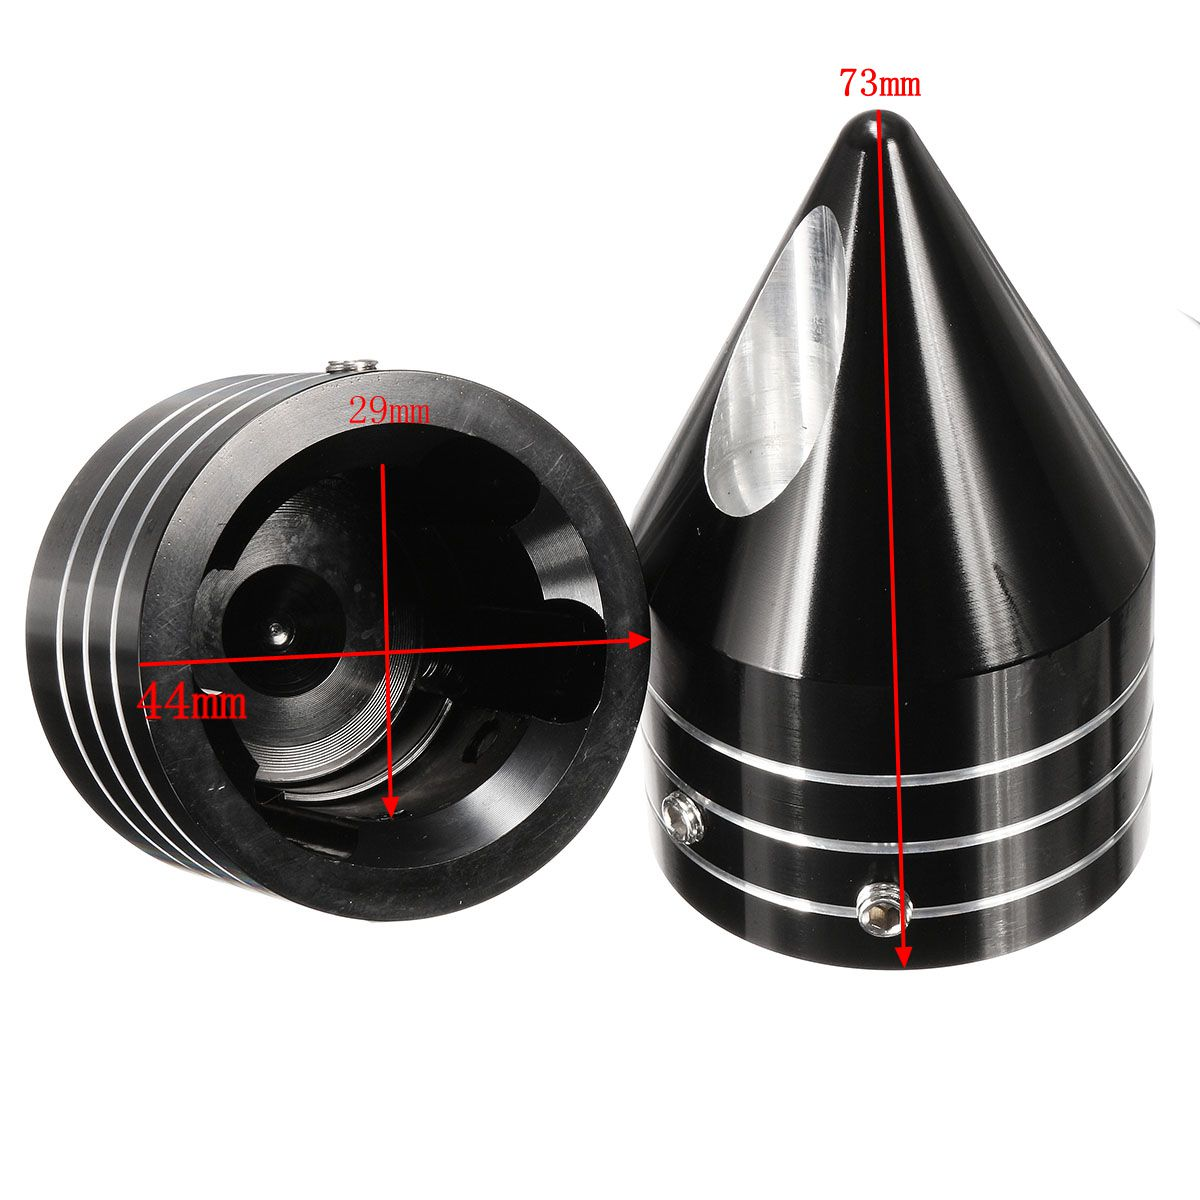 CNC Deep Cut Spike Front Axle Cap Nut Covers For Harley Dyna Touring Road King